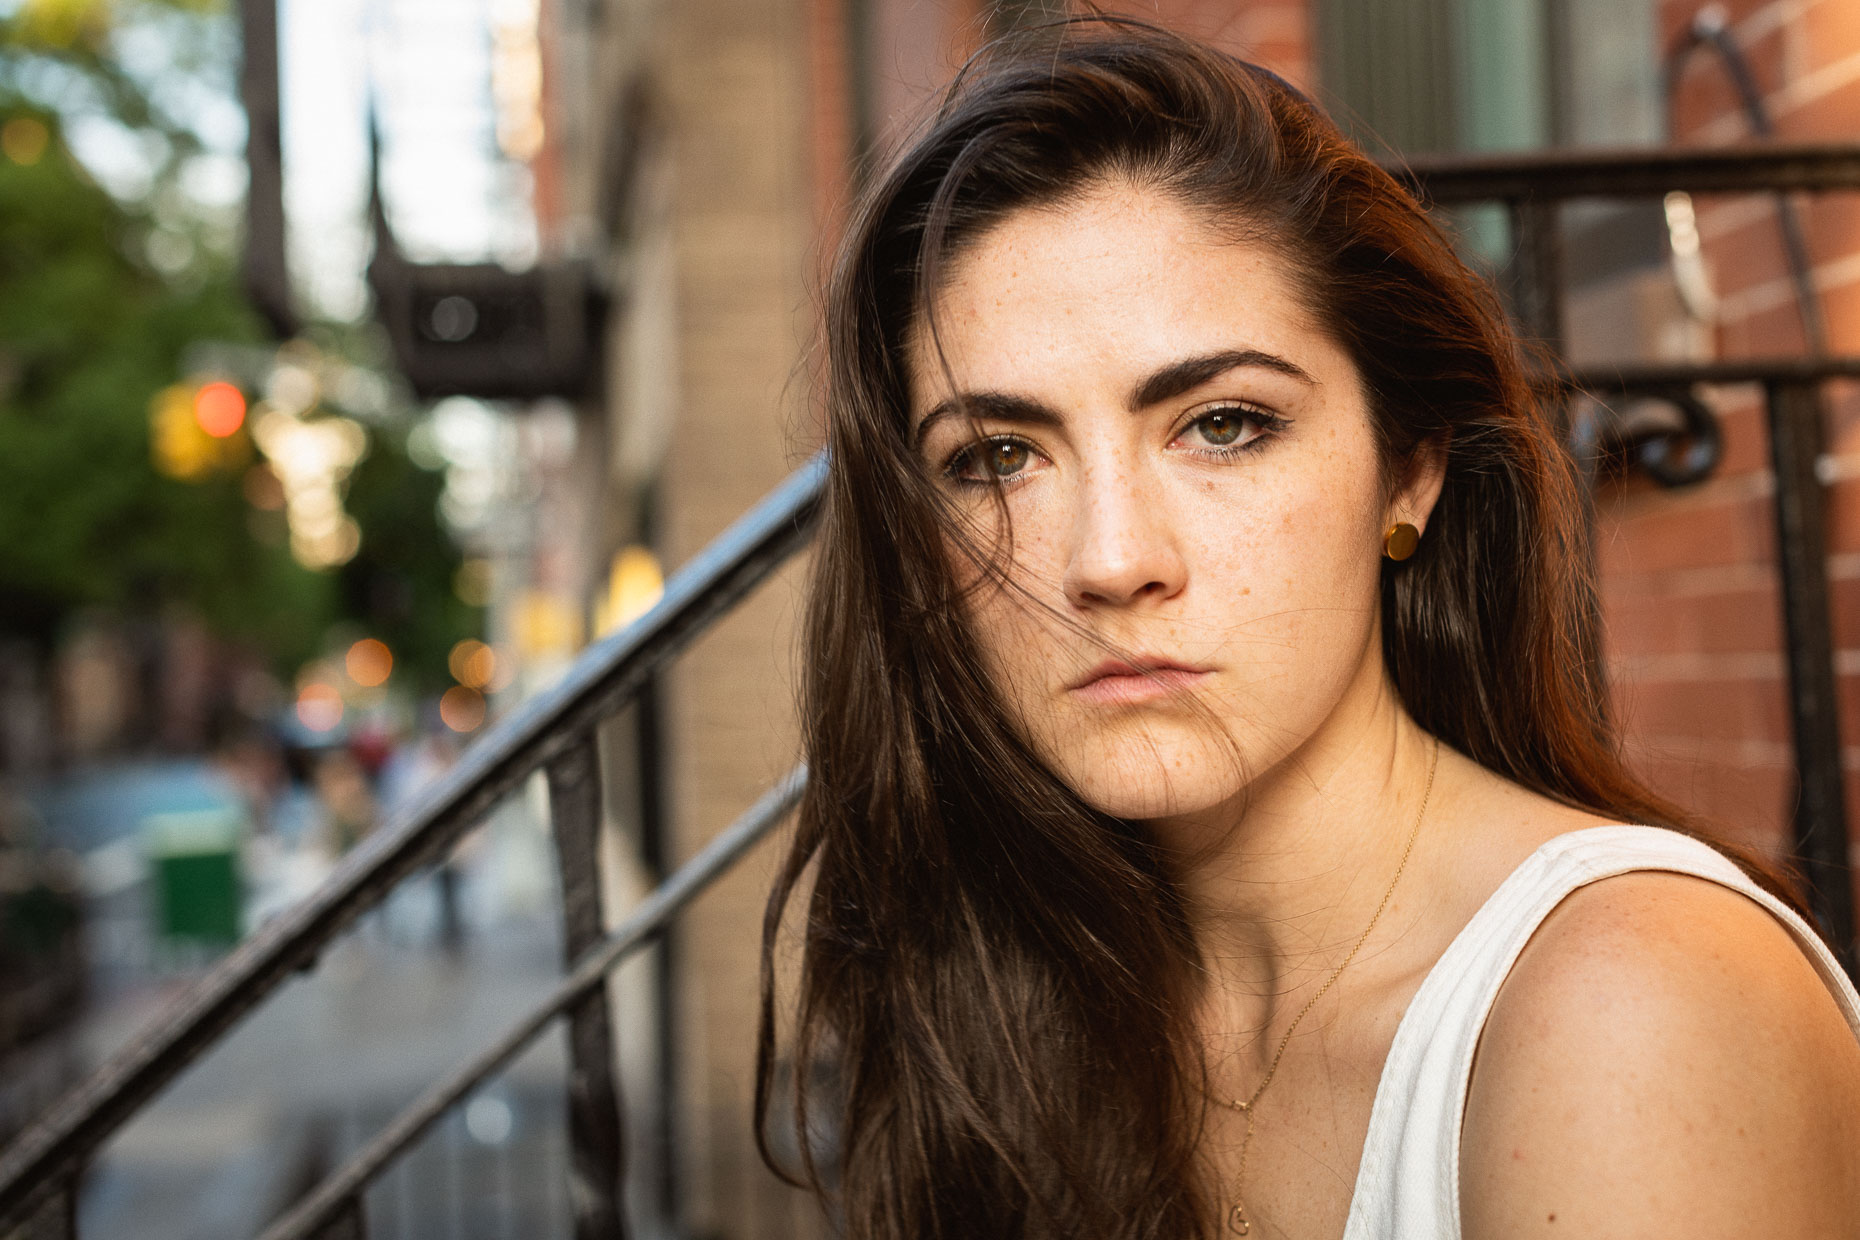 Isabelle_Fuhrman_NYC_21_06_2019_Christian_Brecheis-4957_w